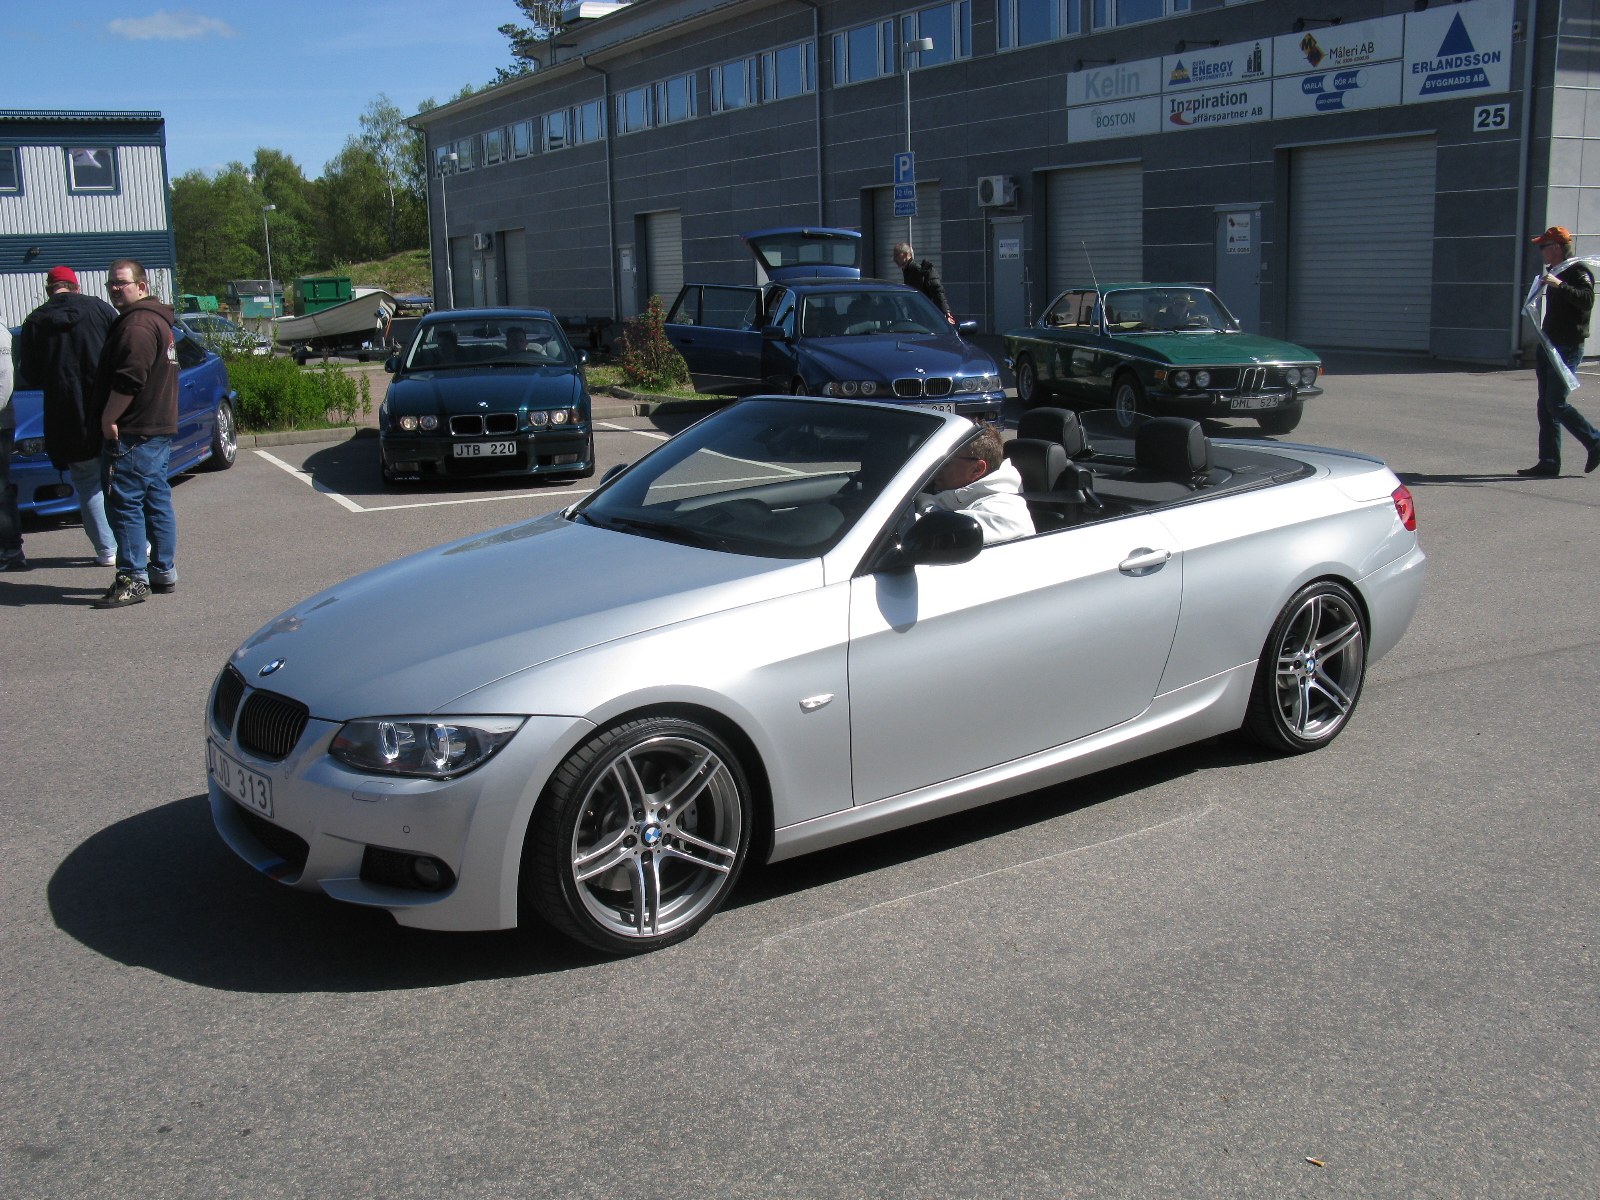 Filebmw 335i Cabriolet E93 14102653265 Wikimedia Commons Bmw Convertible